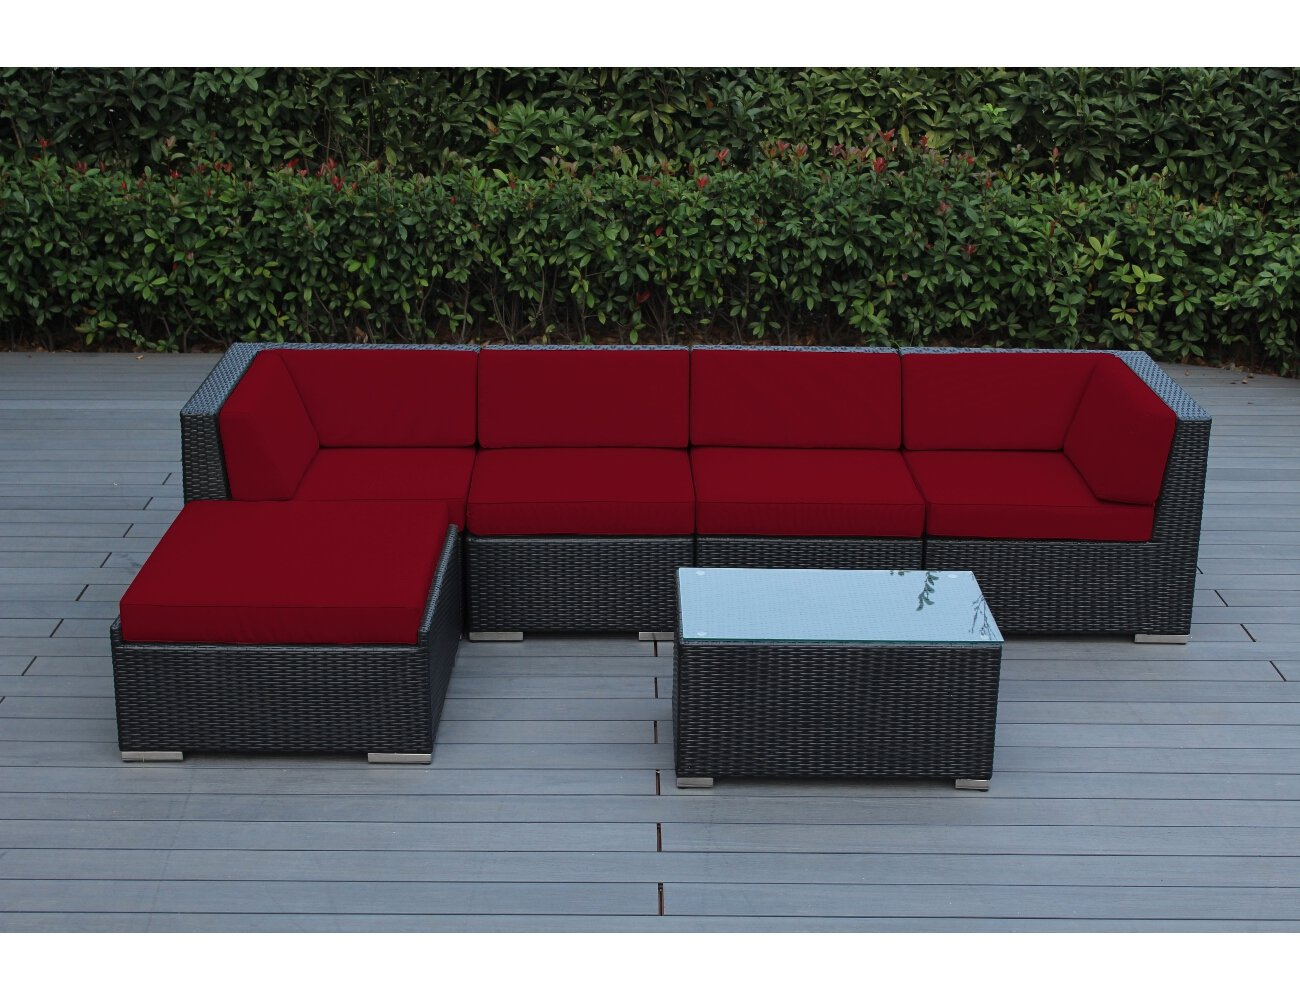 Amazon.com  Ohana 6-Piece Outdoor Wicker Patio Furniture Sectional Conversation Set with Weather Resistant Cushions Red (PN0609RD)  Garden u0026 Outdoor : patio furniture sectional - Sectionals, Sofas & Couches